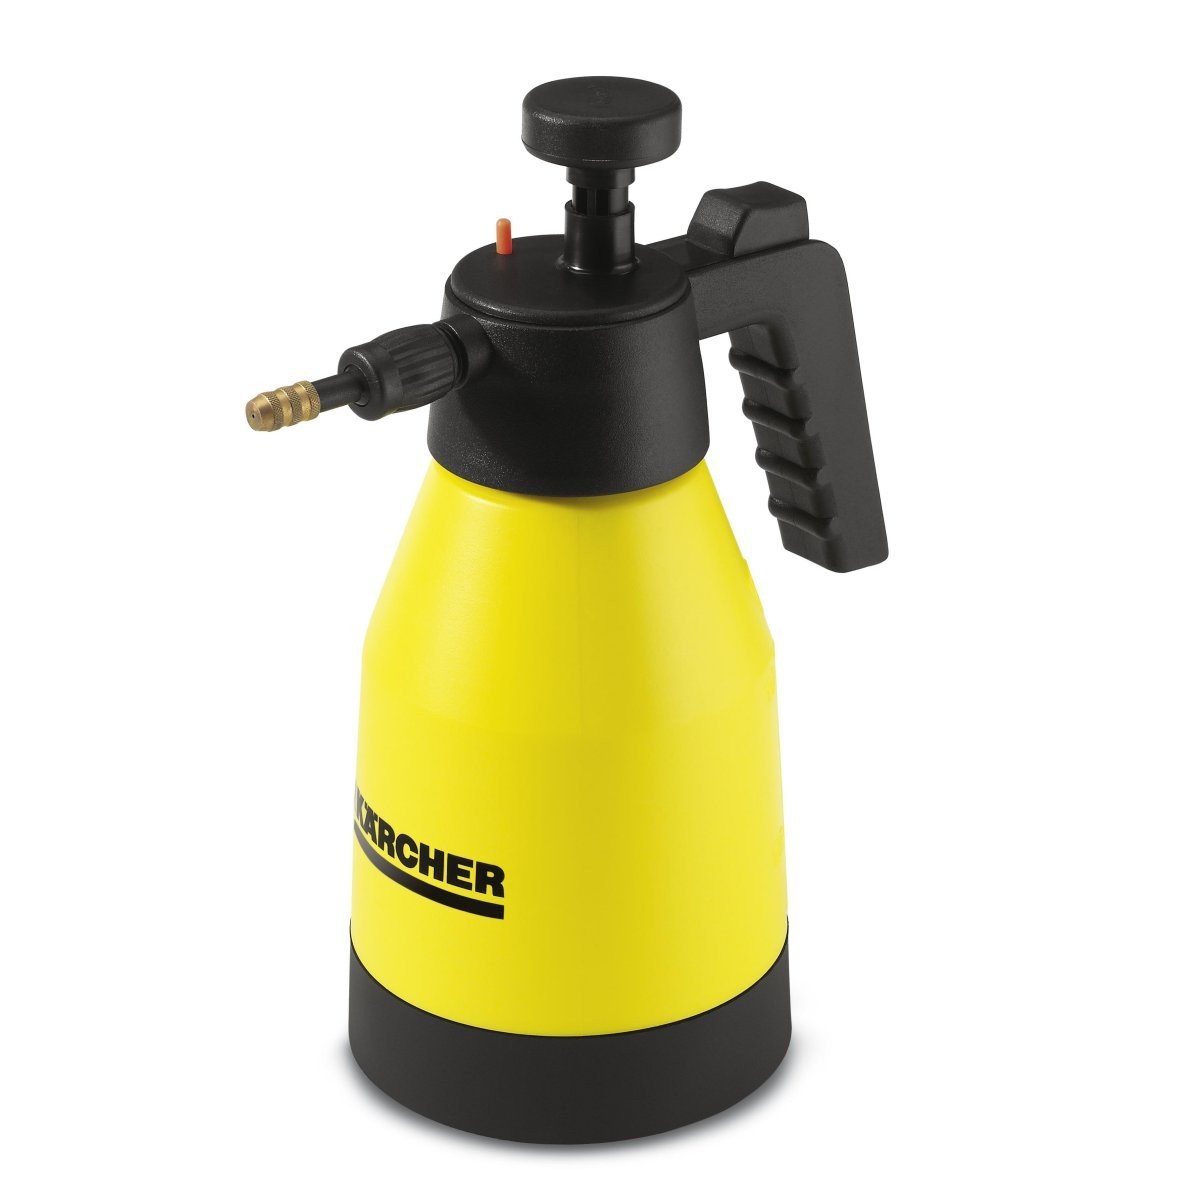 KARCHER PUMP ACTION SPRAY BOTTLE 1ltr ea